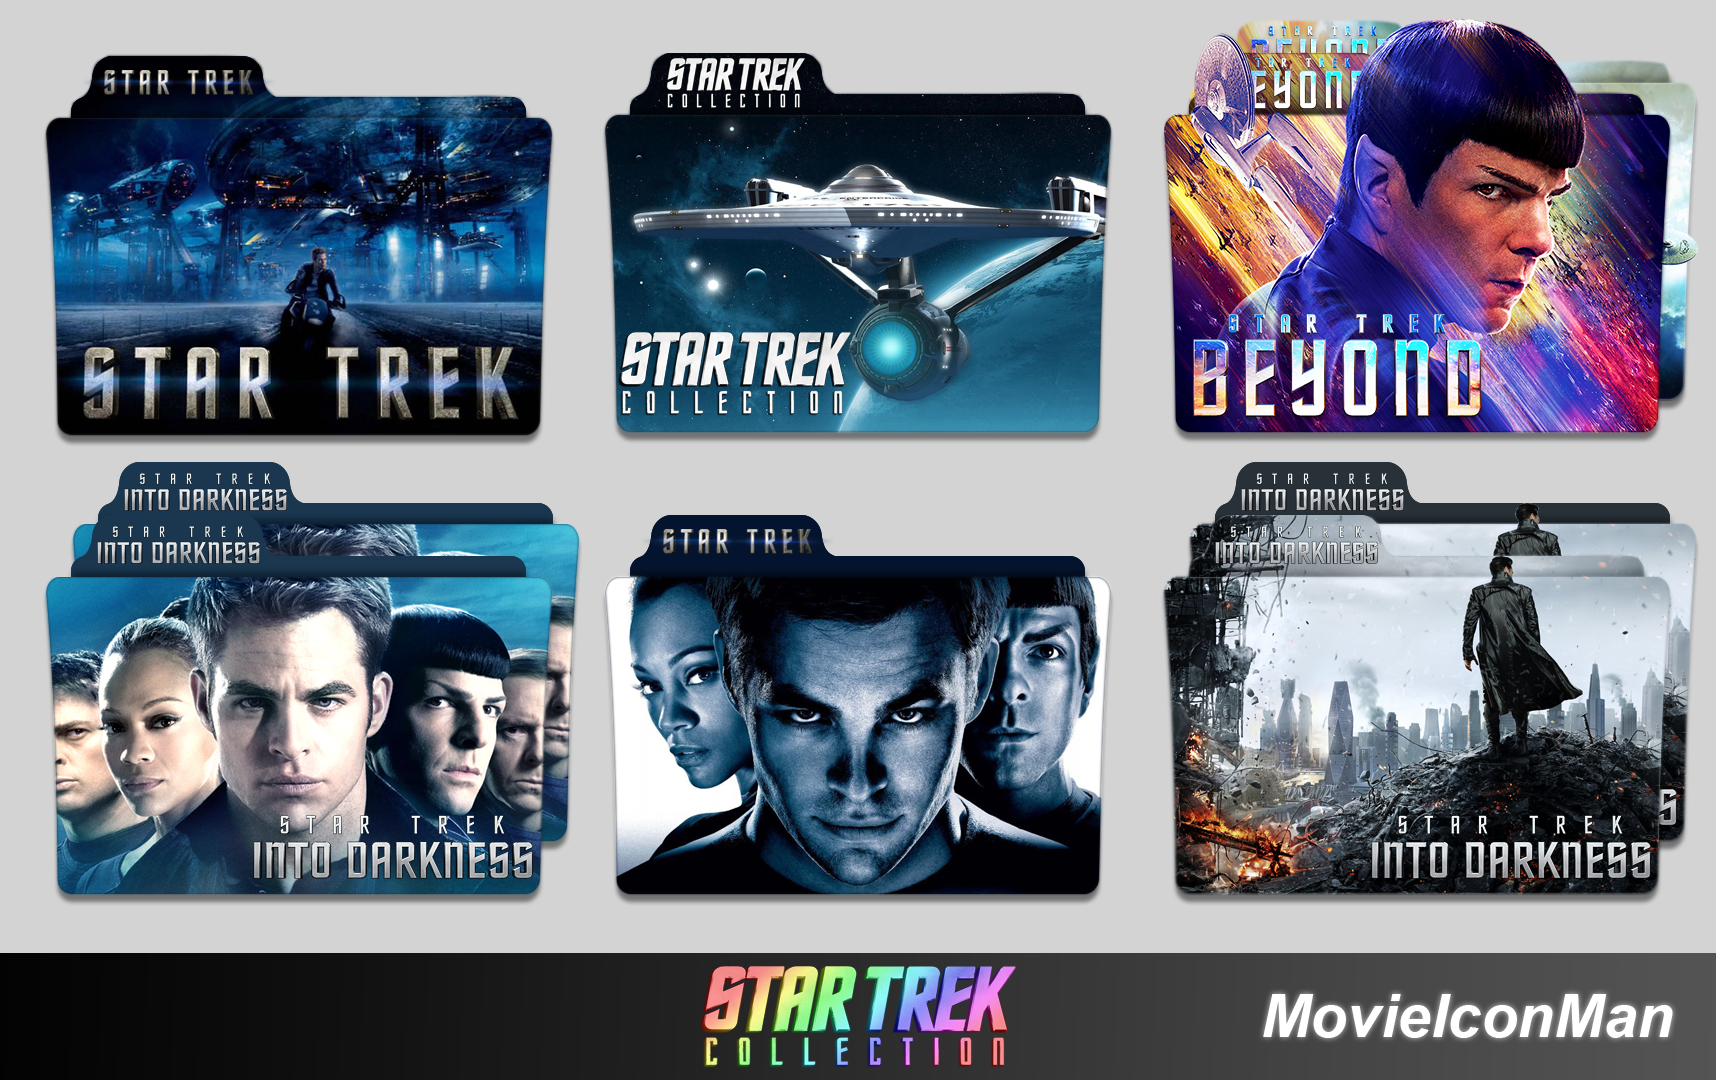 Star Trek Collection Folder Icon Pack By Movieiconman On